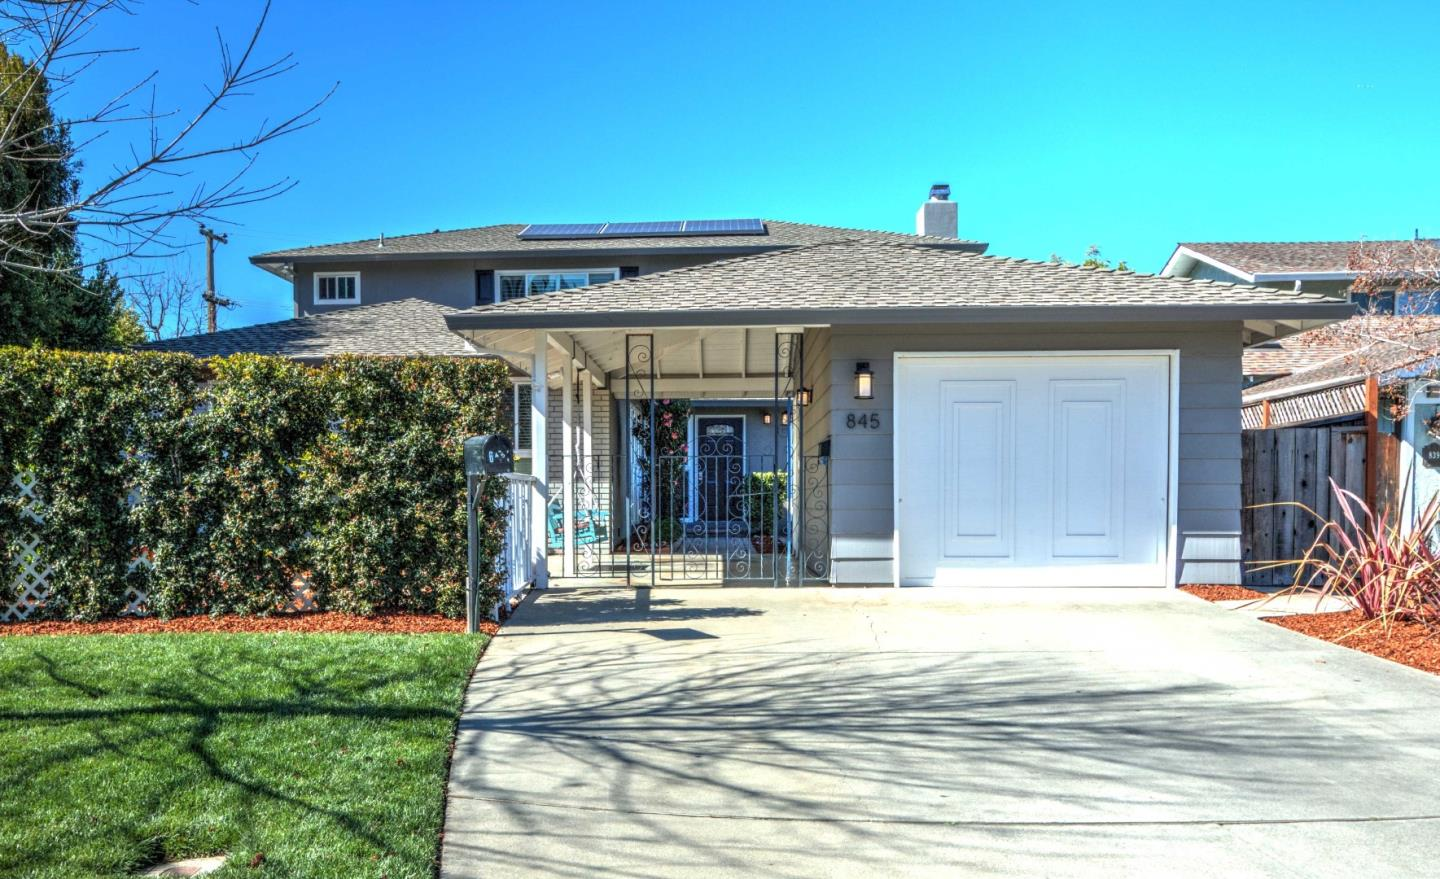 Single Family Home for Sale at 845 Groton Court 845 Groton Court Sunnyvale, California 94087 United States